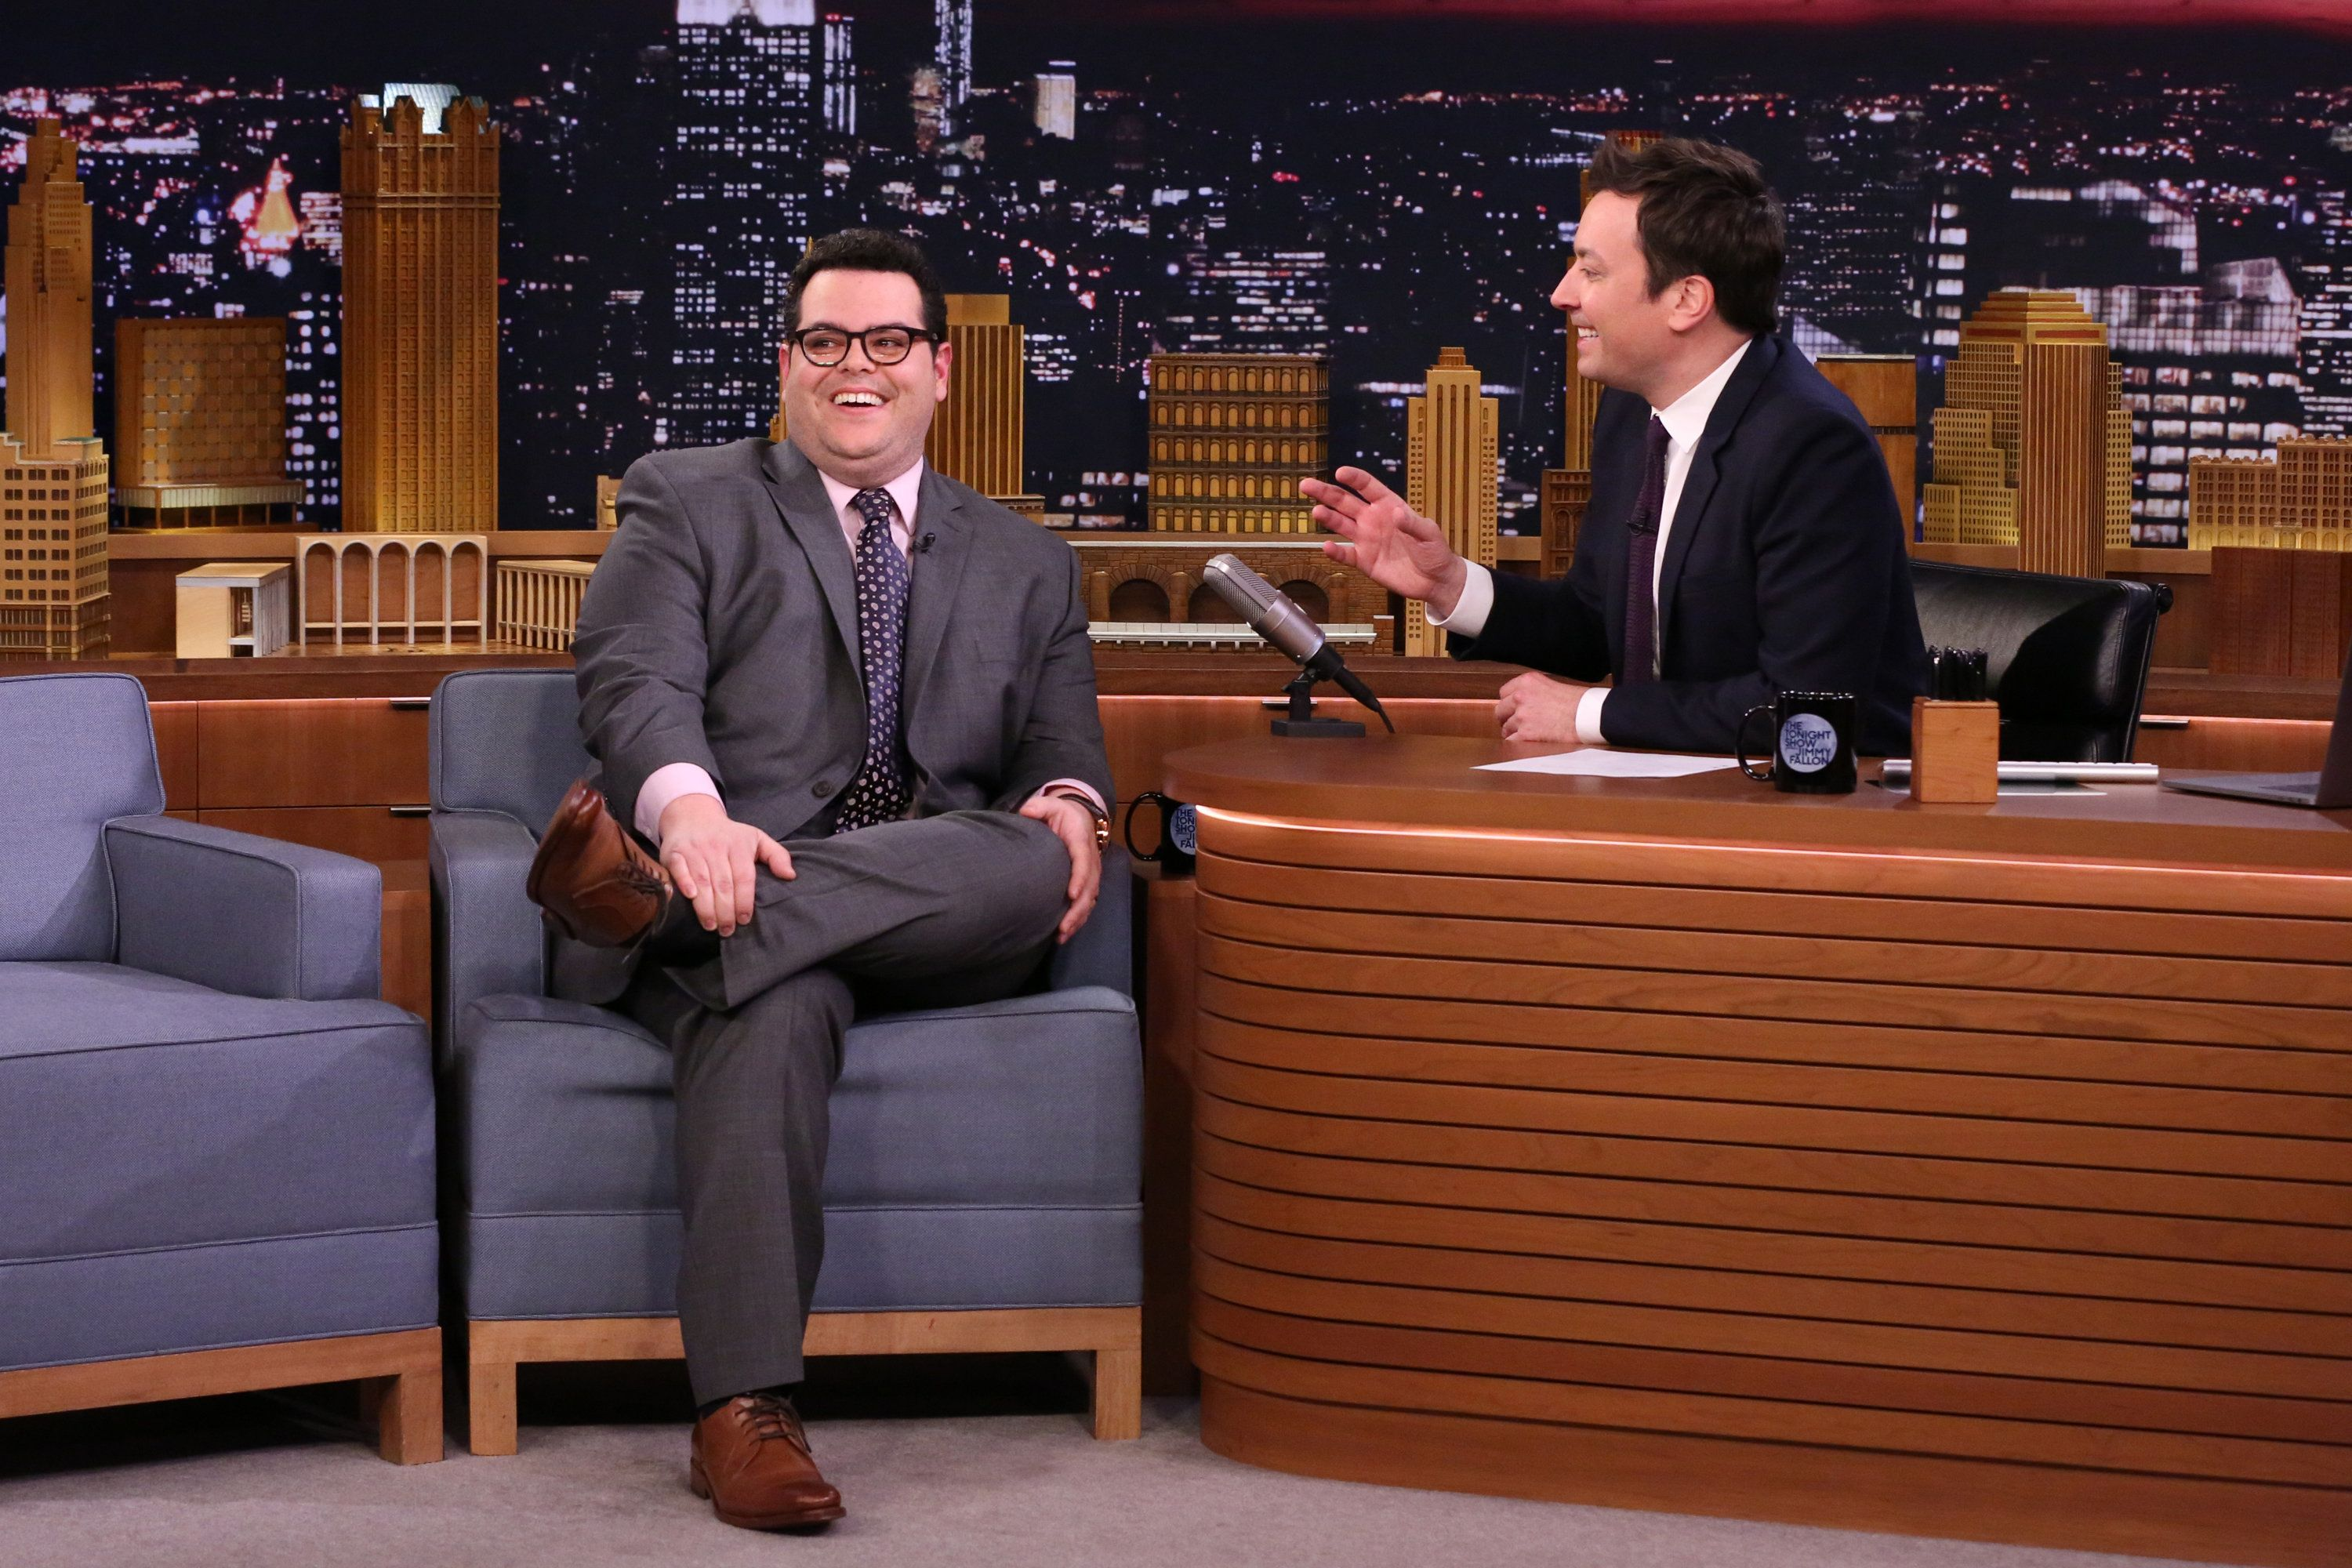 THE TONIGHT SHOW STARRING JIMMY FALLON -- Episode 639 -- Pictured: (l-r) Actor Josh Gad during an interview with host Jimmy Fallon on March 14, 2017 -- (Photo by: Andrew Lipovsky/NBC/NBCU Photo Bank via Getty Images)